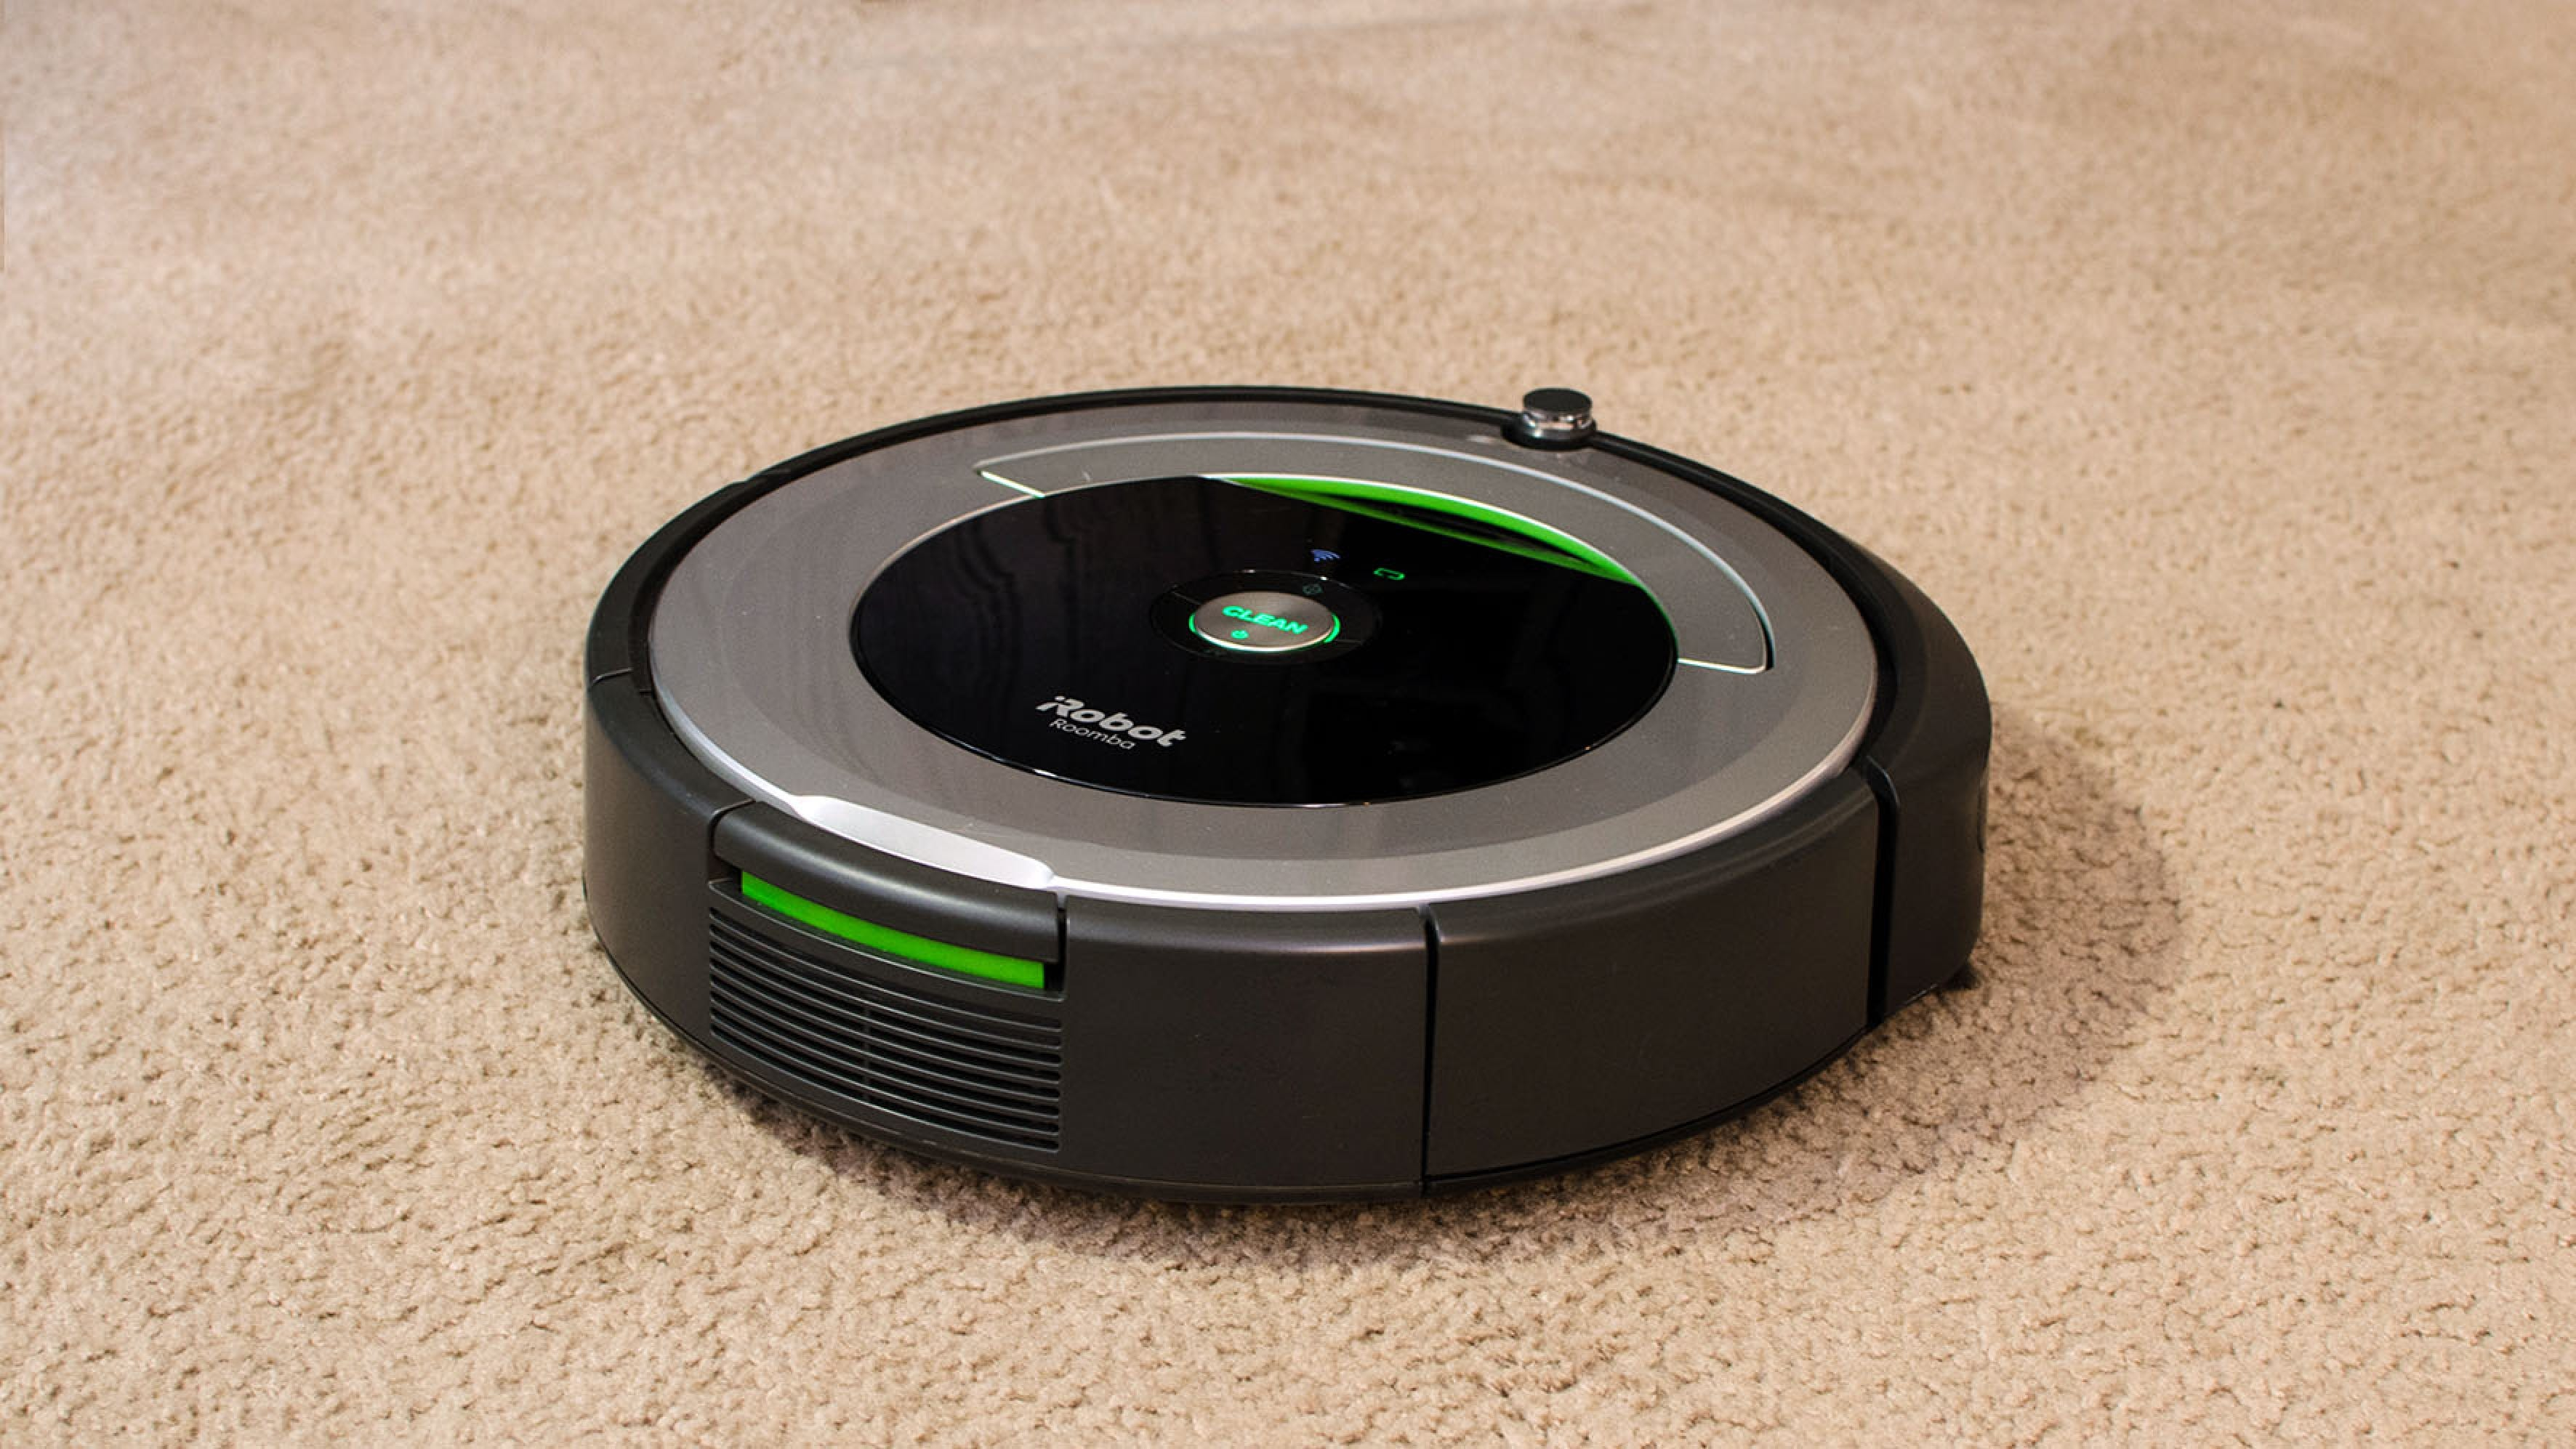 Roomba 690 Review: What a Modern Robot Vacuum Should Be